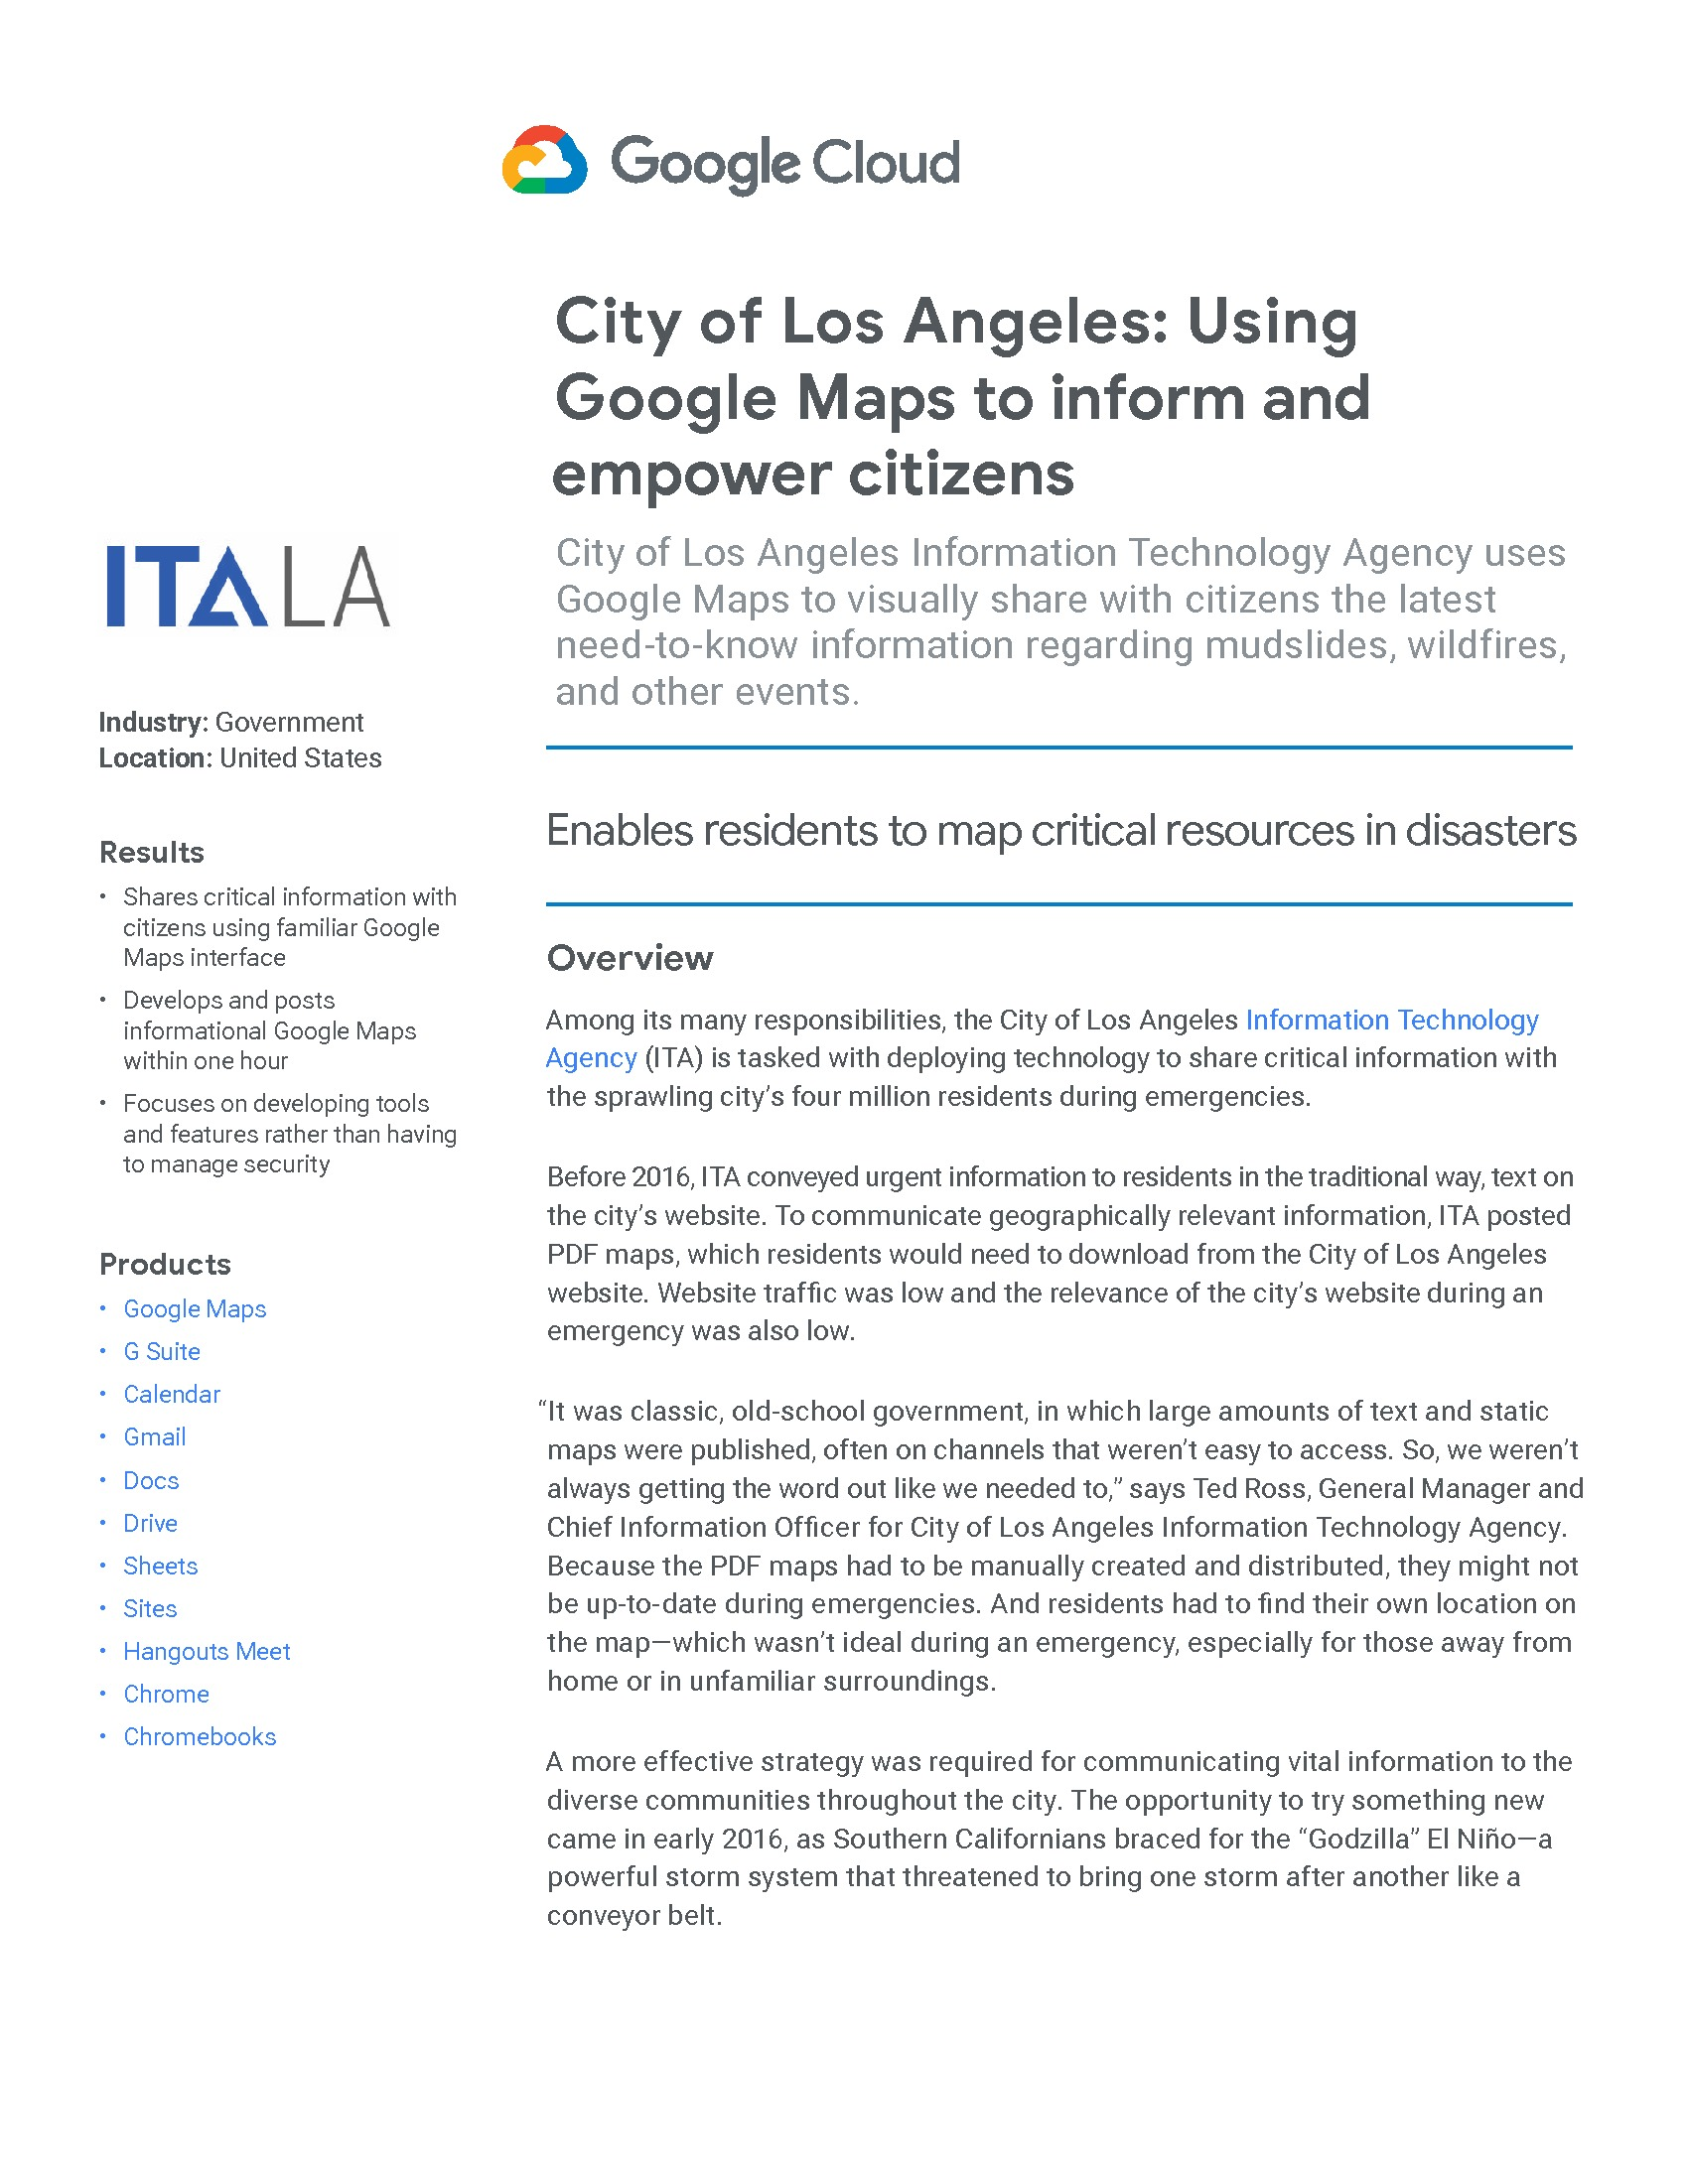 GT - Google - Client Supplied - 181022 - City of Los Angeles